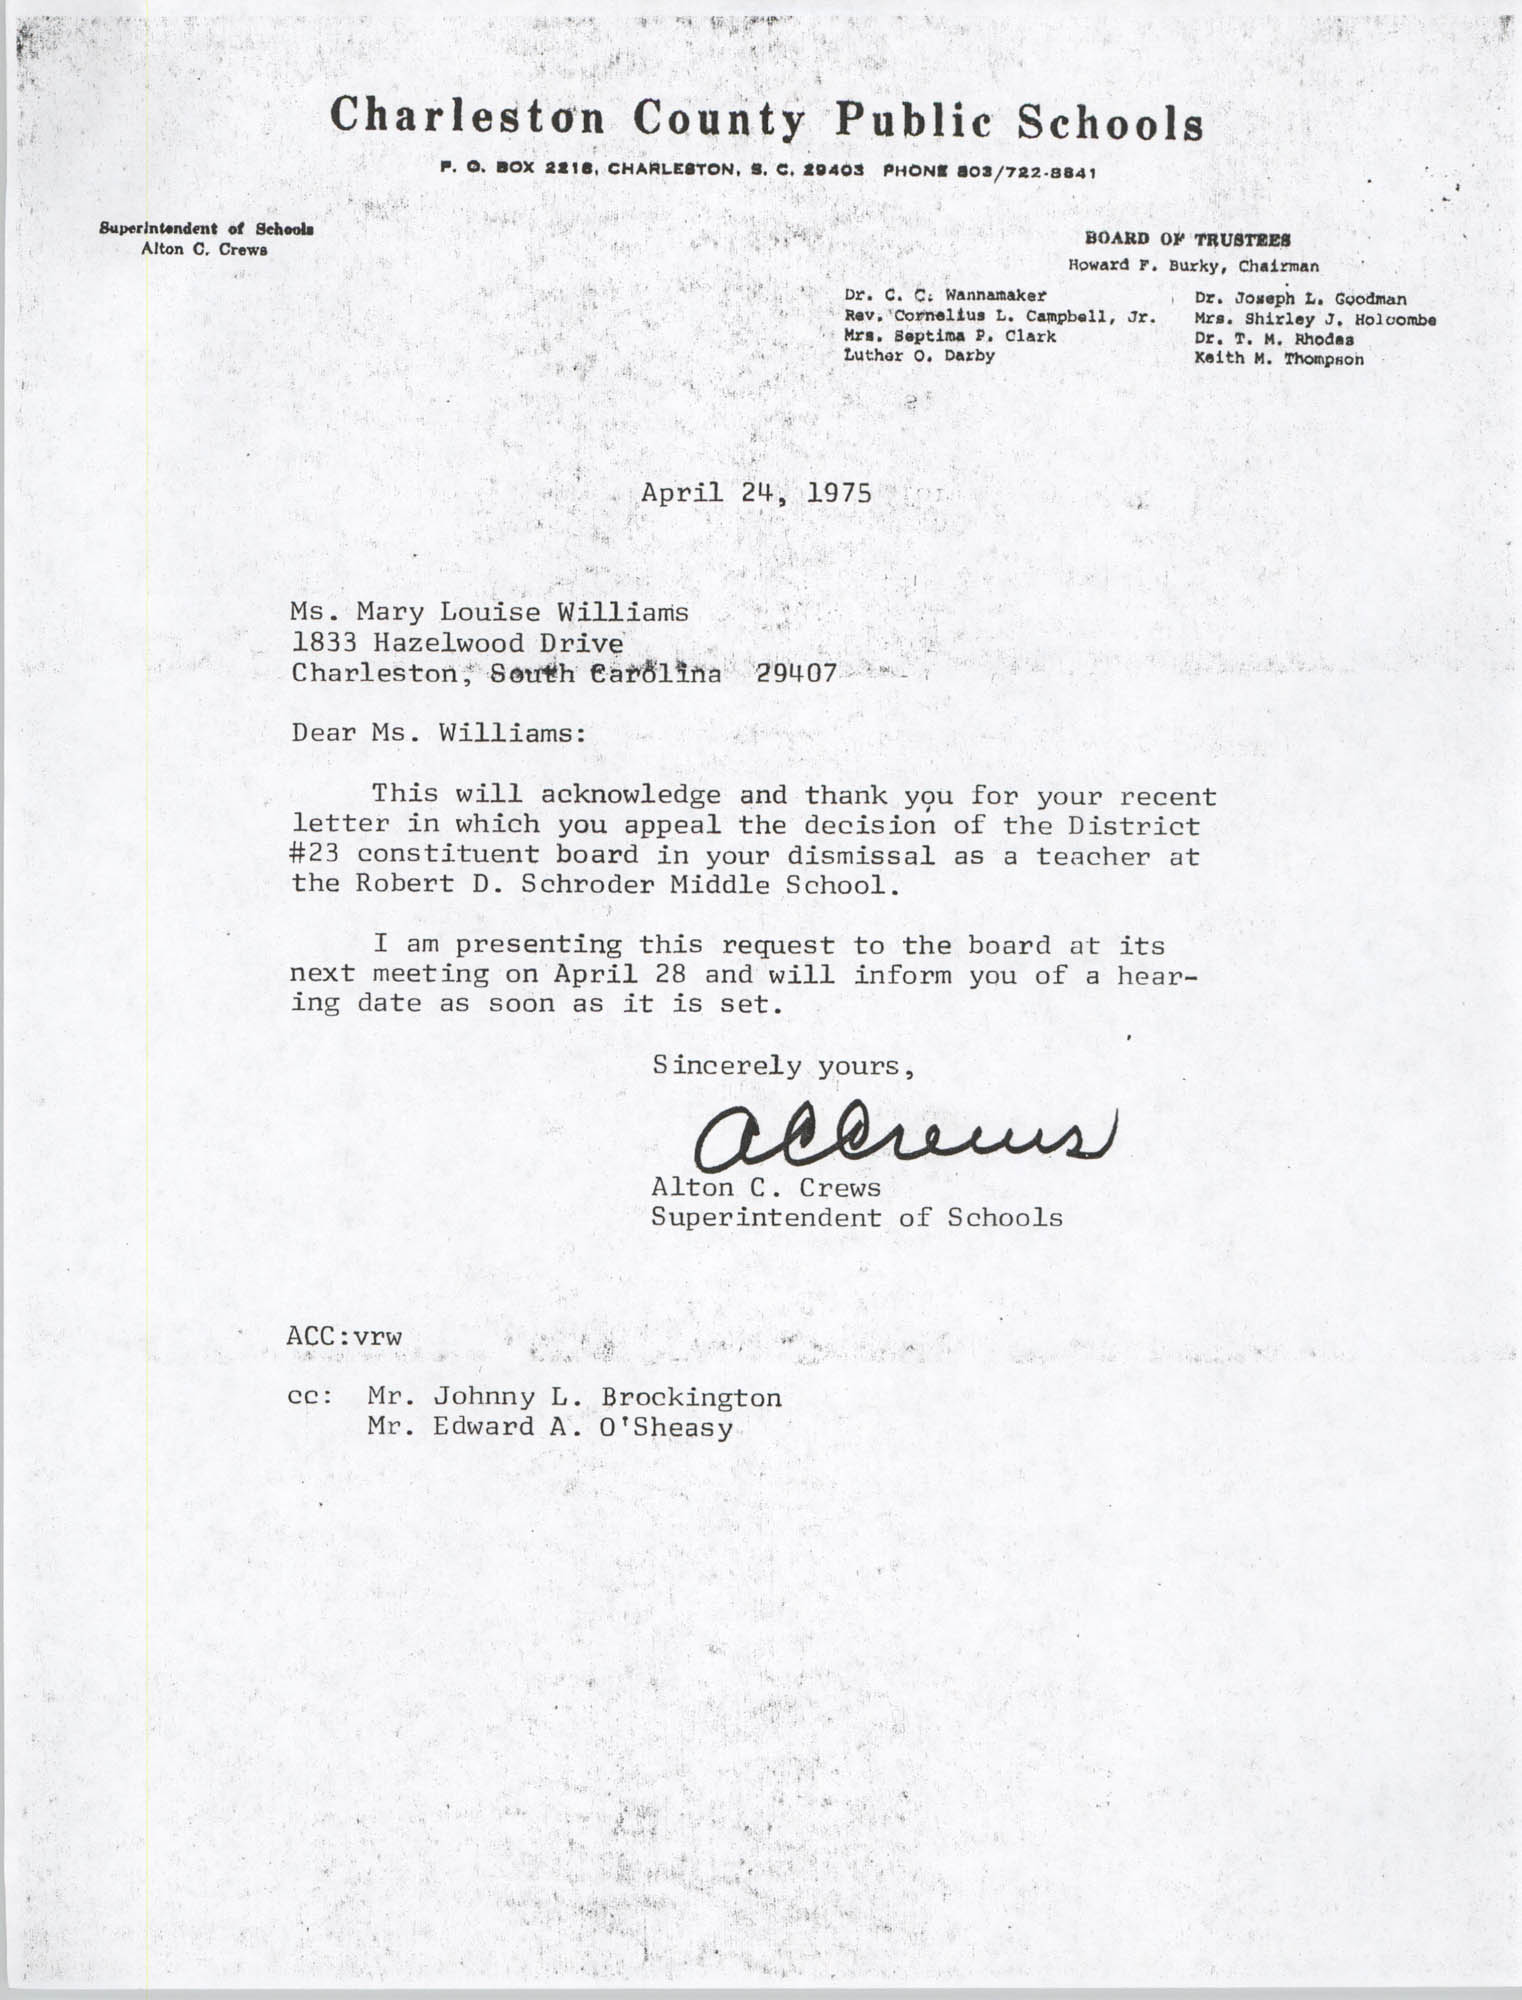 Letter from Alton C. Crews to Mary L. Williams, April 24, 1975